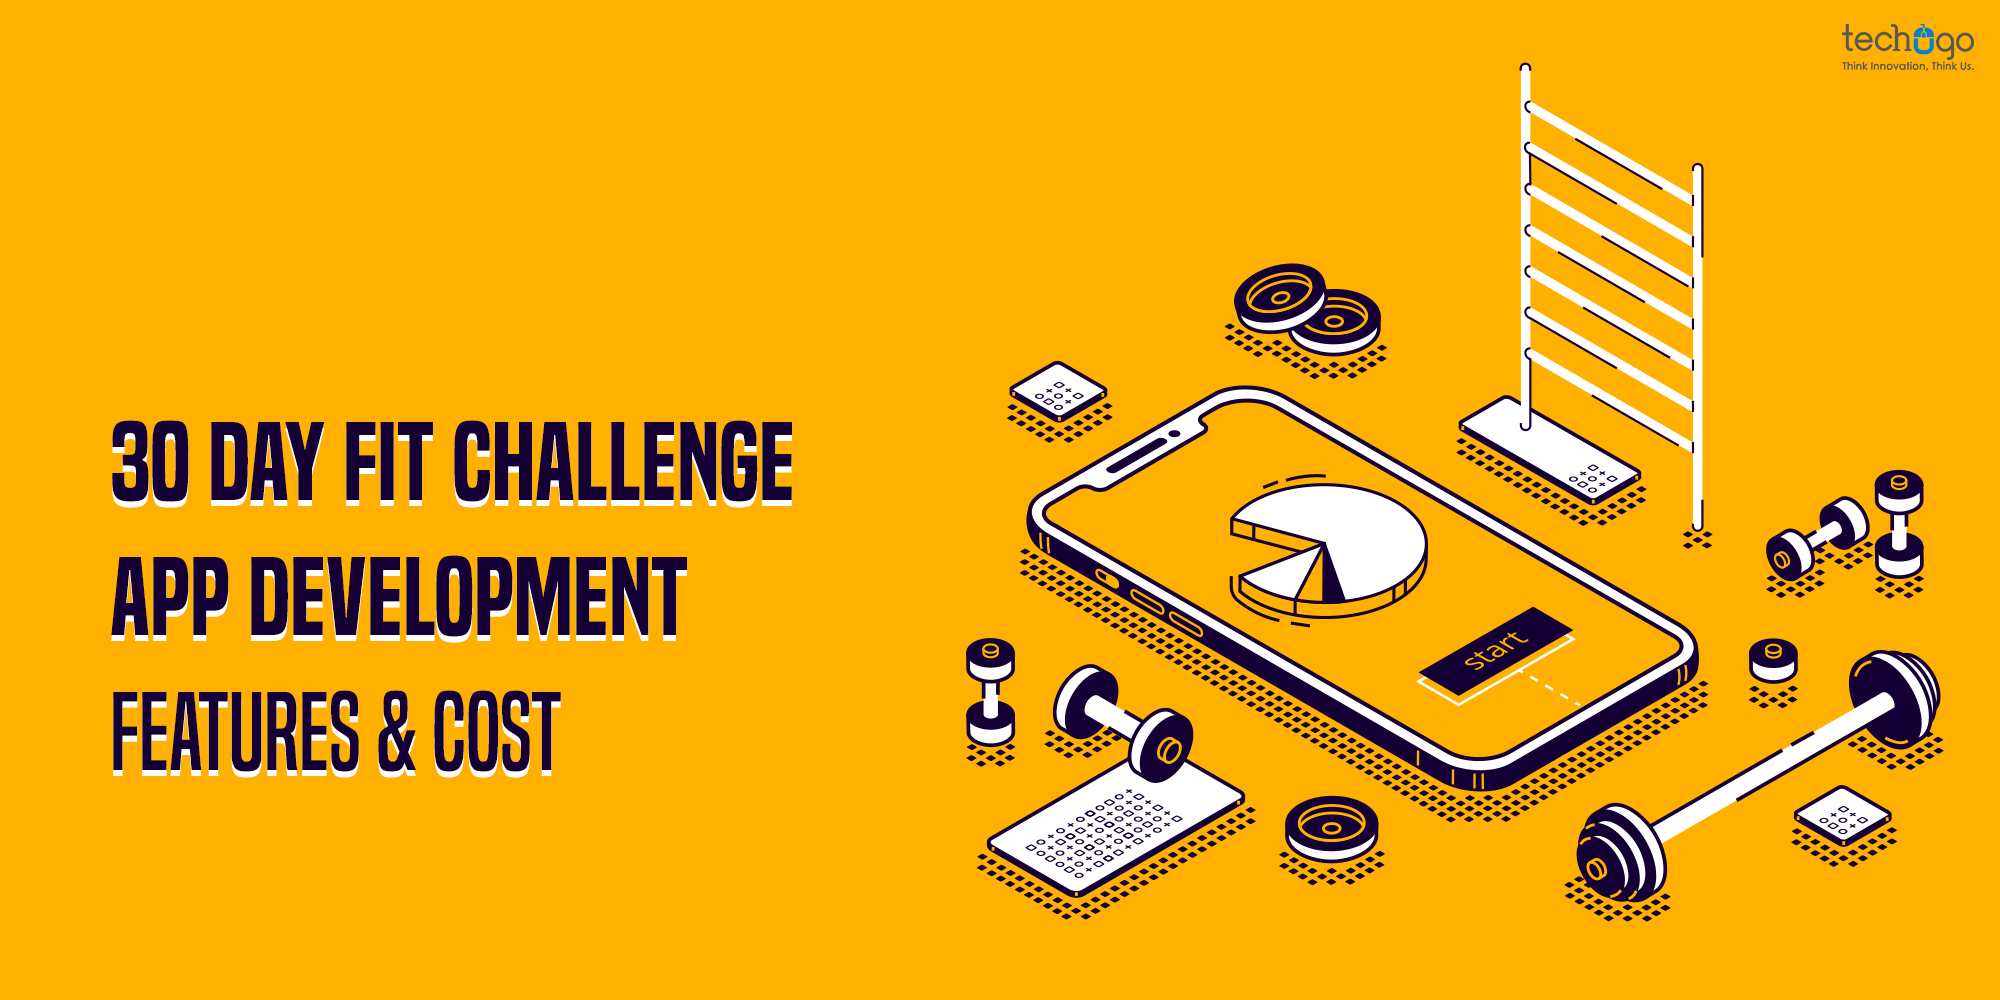 30 Day Fit Challenge App Development - Features & Cost